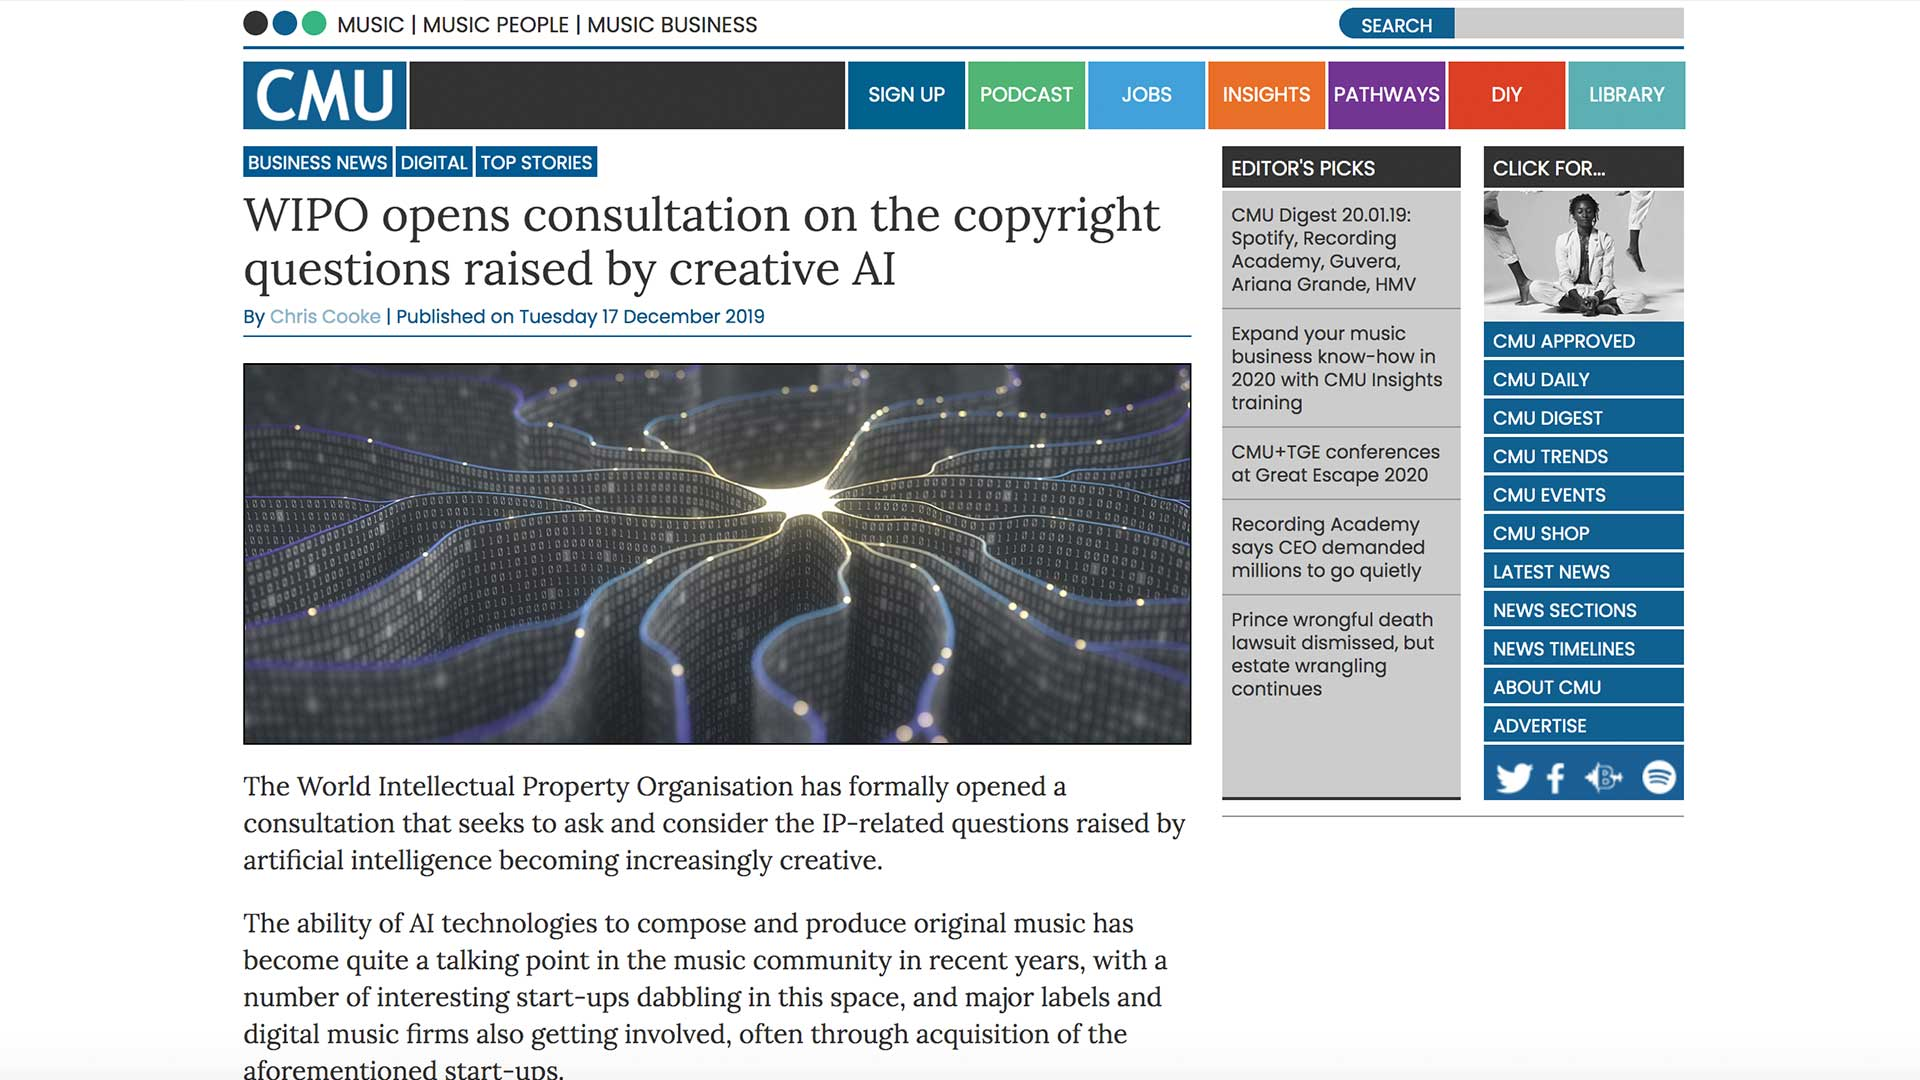 Fairness Rocks News WIPO opens consultation on the copyright questions raised by creative AI